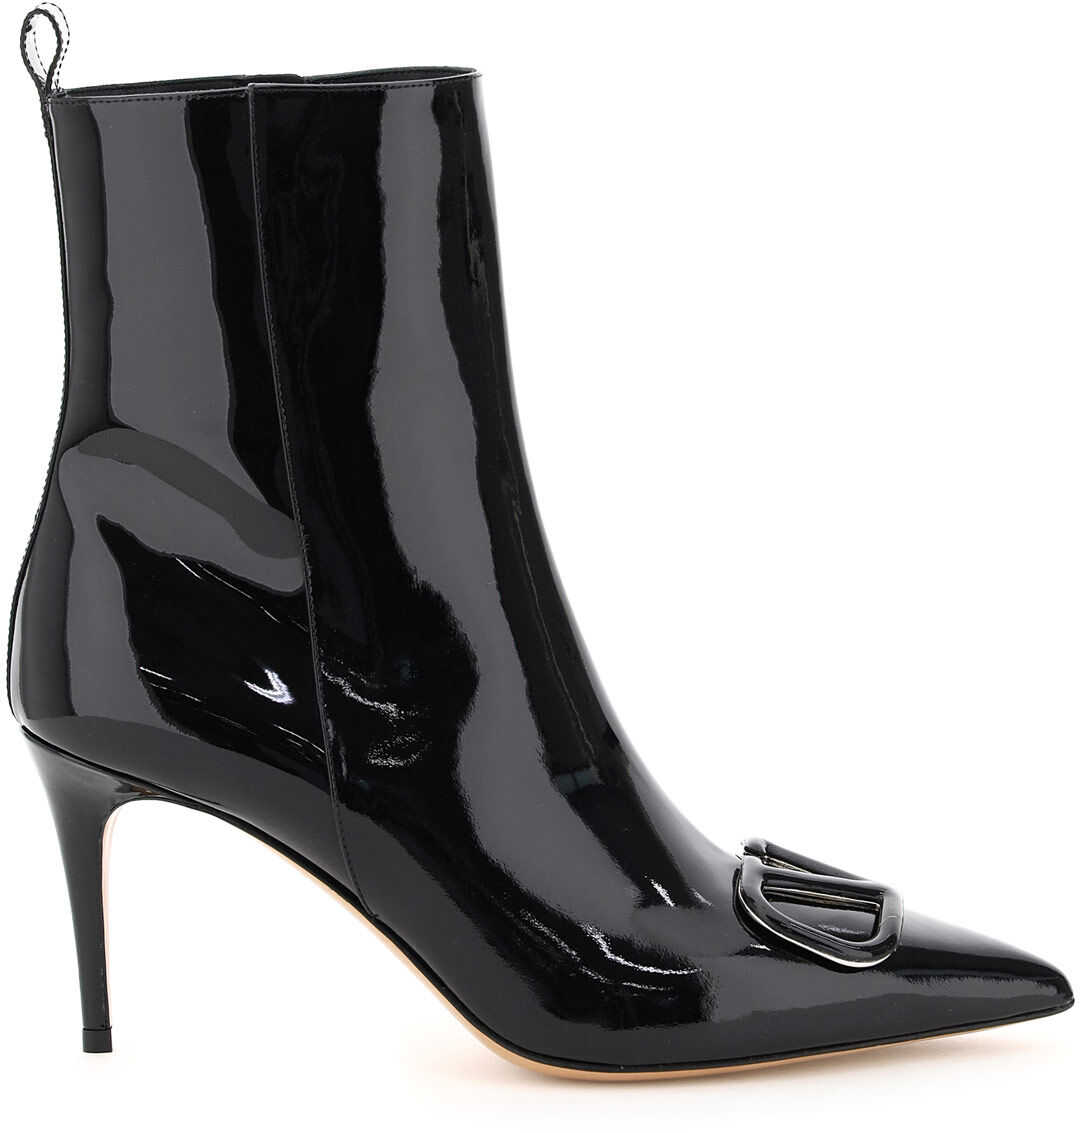 Vlogo Patent Ankle Boots